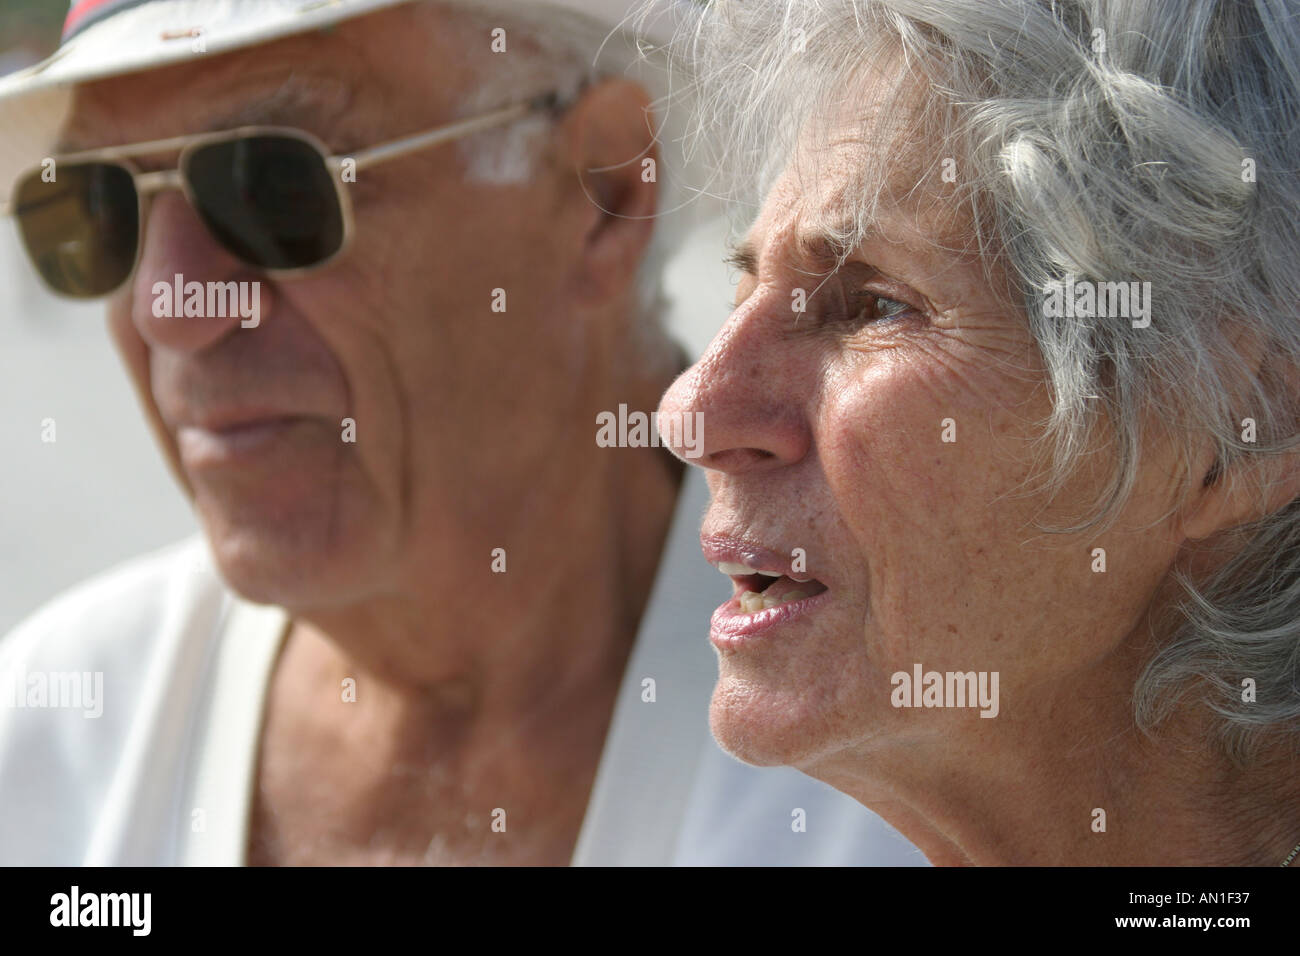 atlantic beach senior personals The city of neptune beach is a community of 7,500 residents located in duval county on a barrier island between the atlantic  beach has origins dating back to.